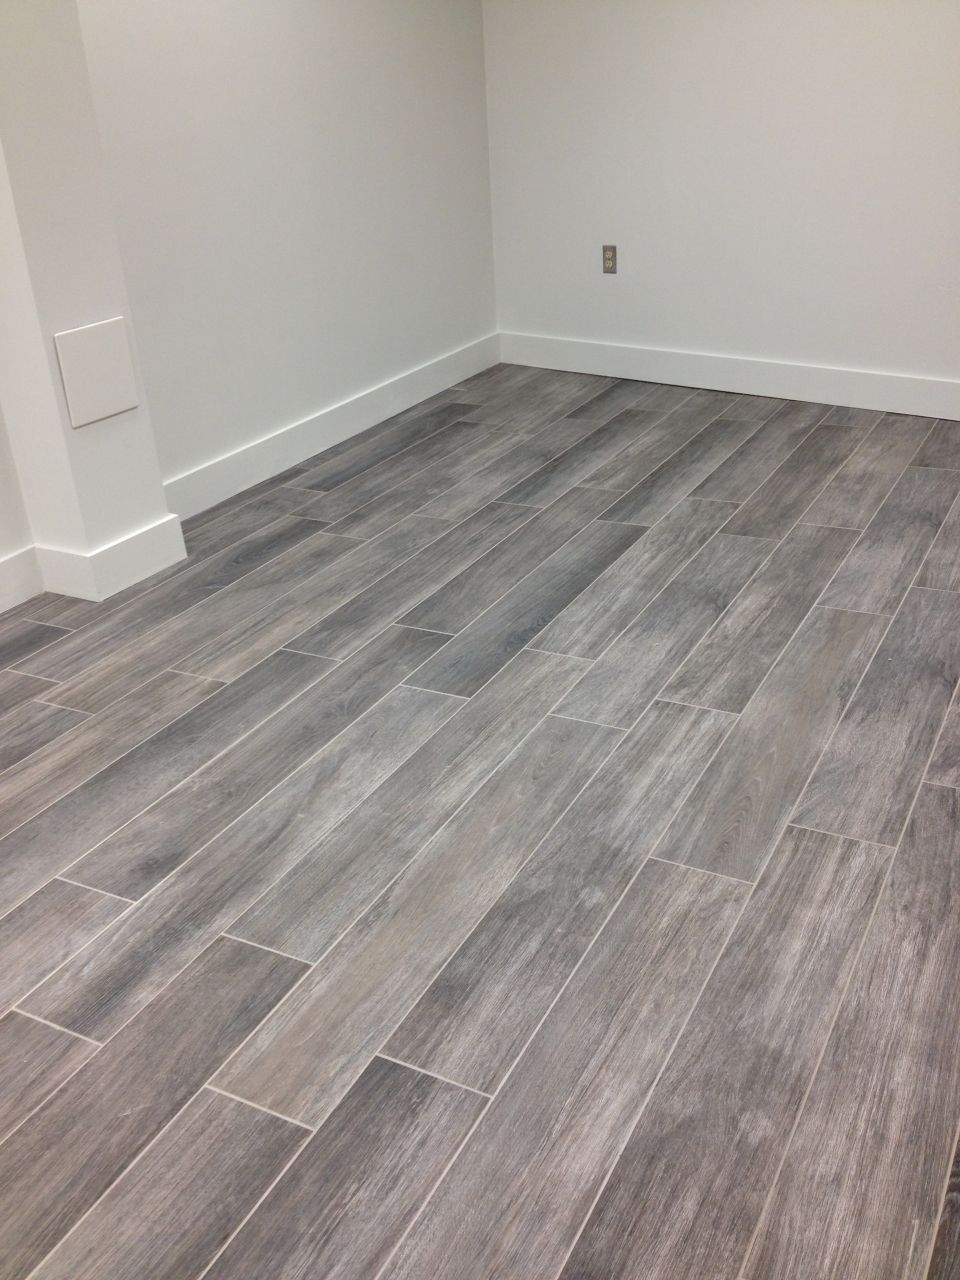 gray wood tile floor nO3lcD6n8 Gray wood tile flooring